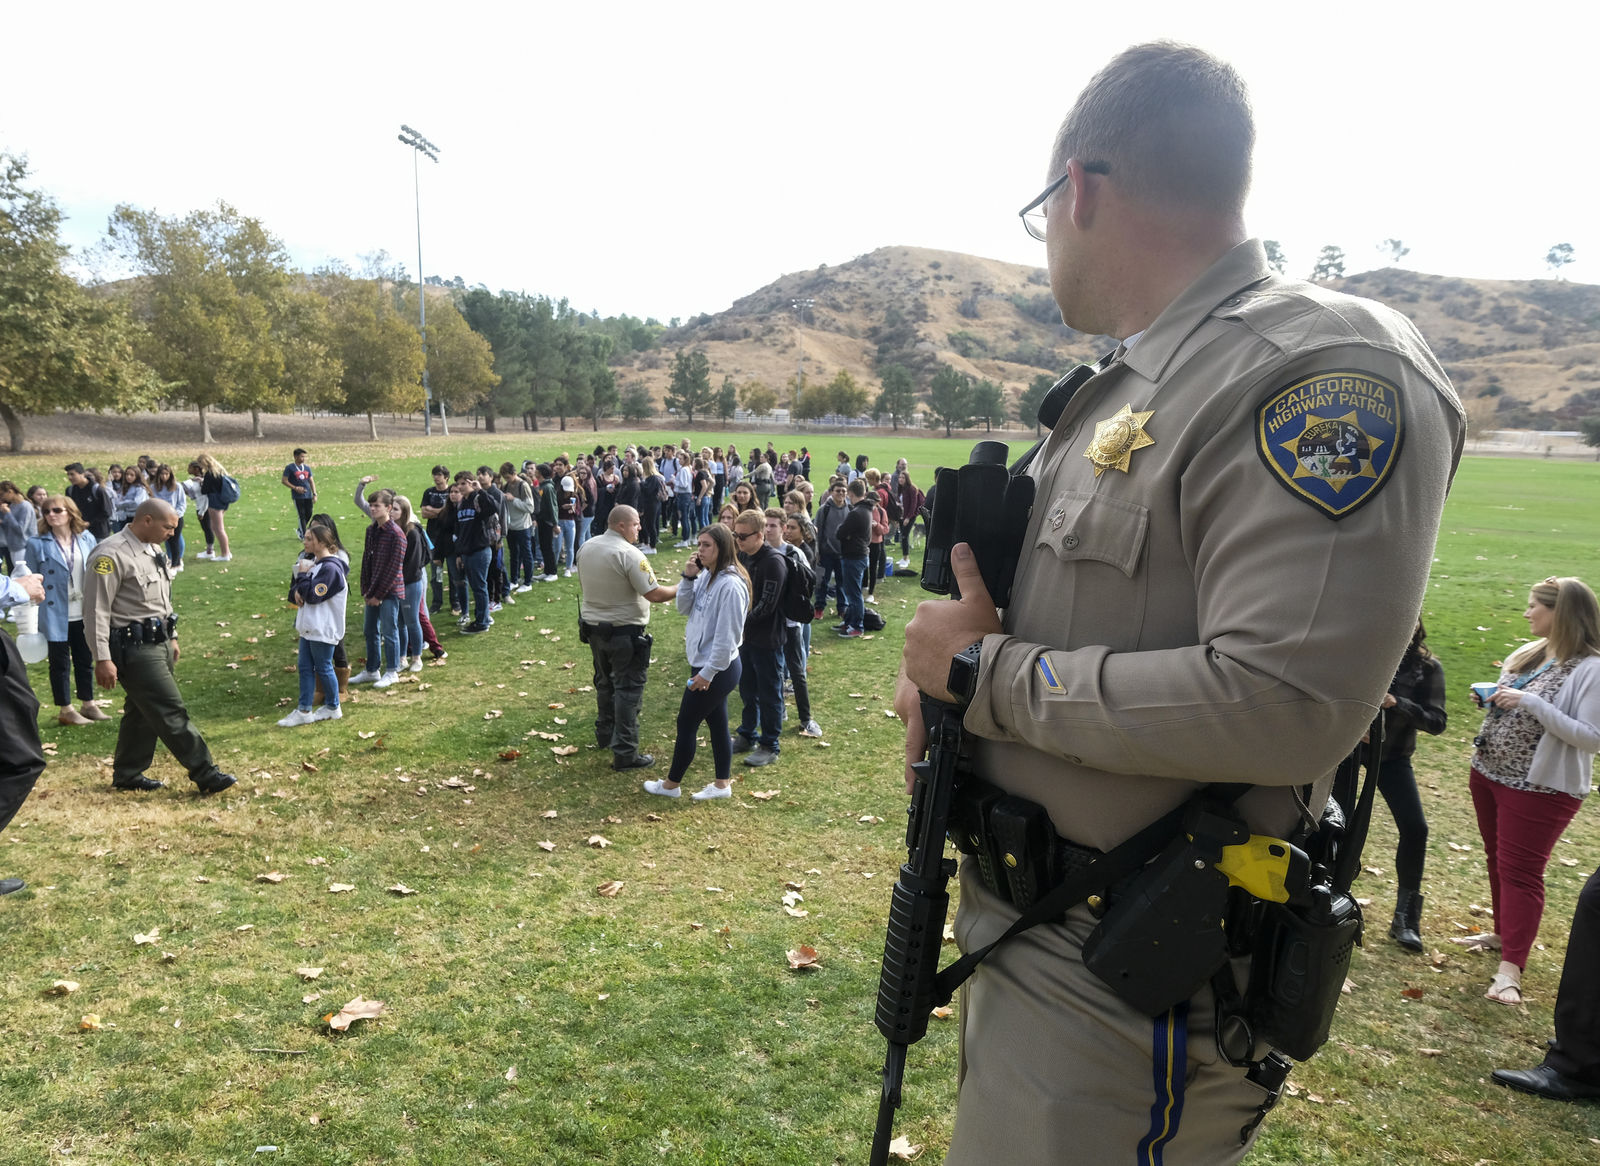 A police officer stands guard as students wait to be reunited with their parents following a shooting at Saugus High School that injured several people, Thursday, Nov. 14, 2019, in Santa Clarita, Calif. (AP Photo/Ringo H.W. Chiu)